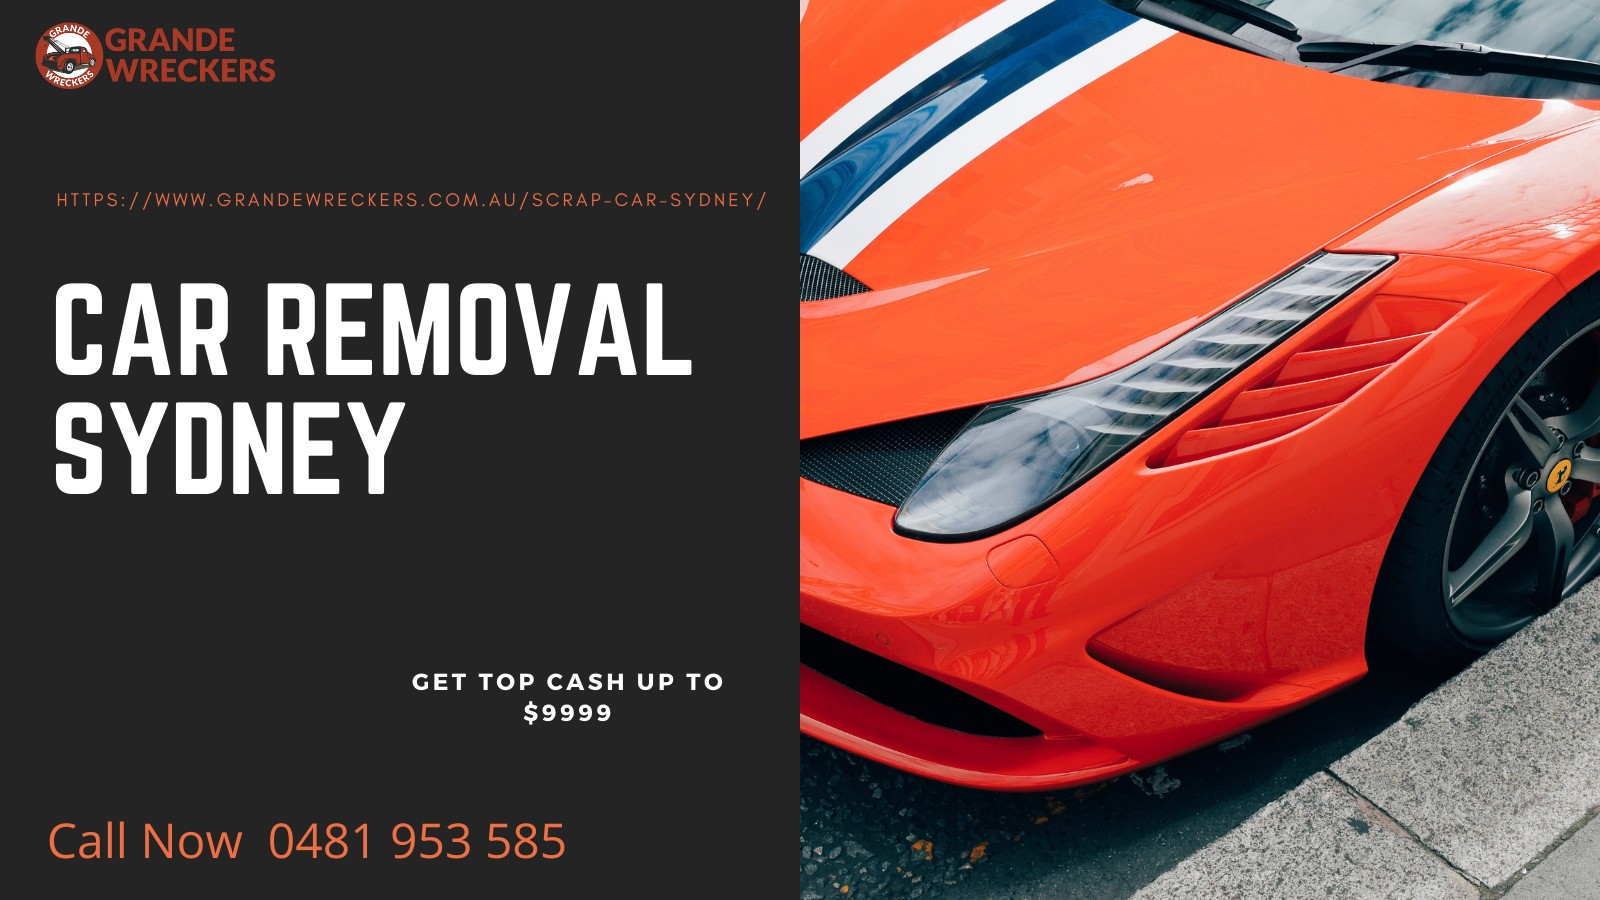 Car Removal in sydney best site for car wreckers